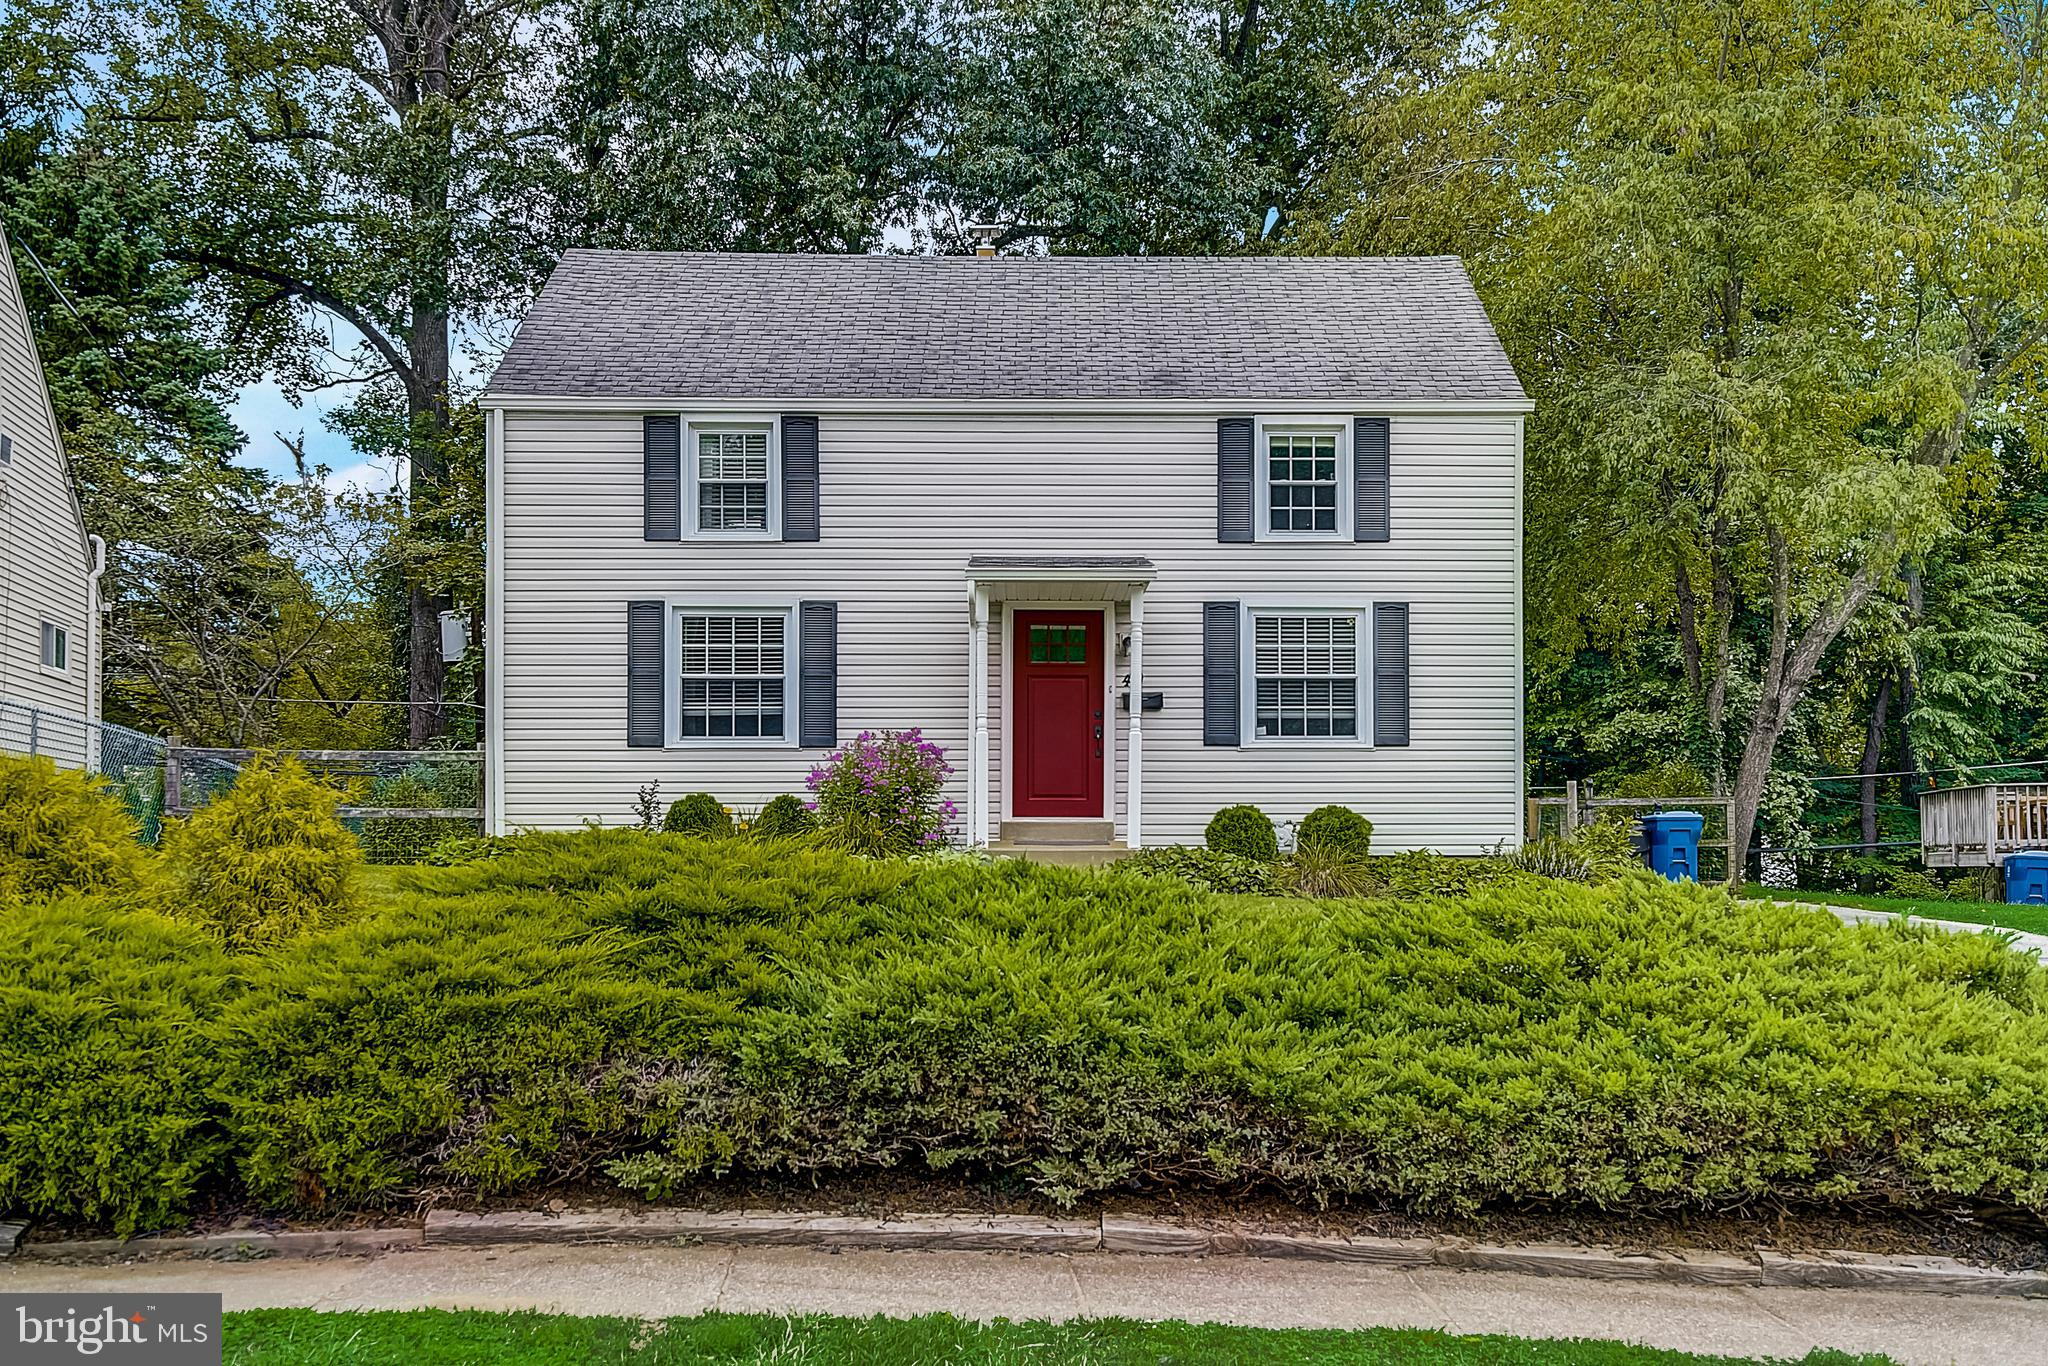 Pack your bags and move right into this wonderful property located in the Easttown Woods section of Berwyn.  From the moment you enter this  well maintained 4 bedroom, 2 full bath open concept Cape Cod home, you are welcomed by the  beautiful hardwood floors and natural light streaming in!  The spacious living/family room flows into the dining area and kitchen.. A door in the kitchen opens to a porch with access to a beautiful stone patio and a private flat, fenced-in backyard perfect for relaxing, entertaining, and enjoying all types of outdoor activities. The main level also  includes  2 bedrooms and a full bath.  On the 2nd level, you will find 2 additional generously sized bedrooms, one of which is the primary bedroom with an updated ensuite bath. The unfinished lower level offers the opportunity for additional living space and also has a walk-out to the backyard. This ready-to-move-in property is located in the renowned  Tredyffrin-Easttown School District and is convenient to shopping, entertainment, and a short distance to the  Easttown Library and Berwyn train station. If move-in-ready condition, convenience,  train access, and great schools are on your list of must-haves, 49 Eastwood could be the house which you would like  to call home!